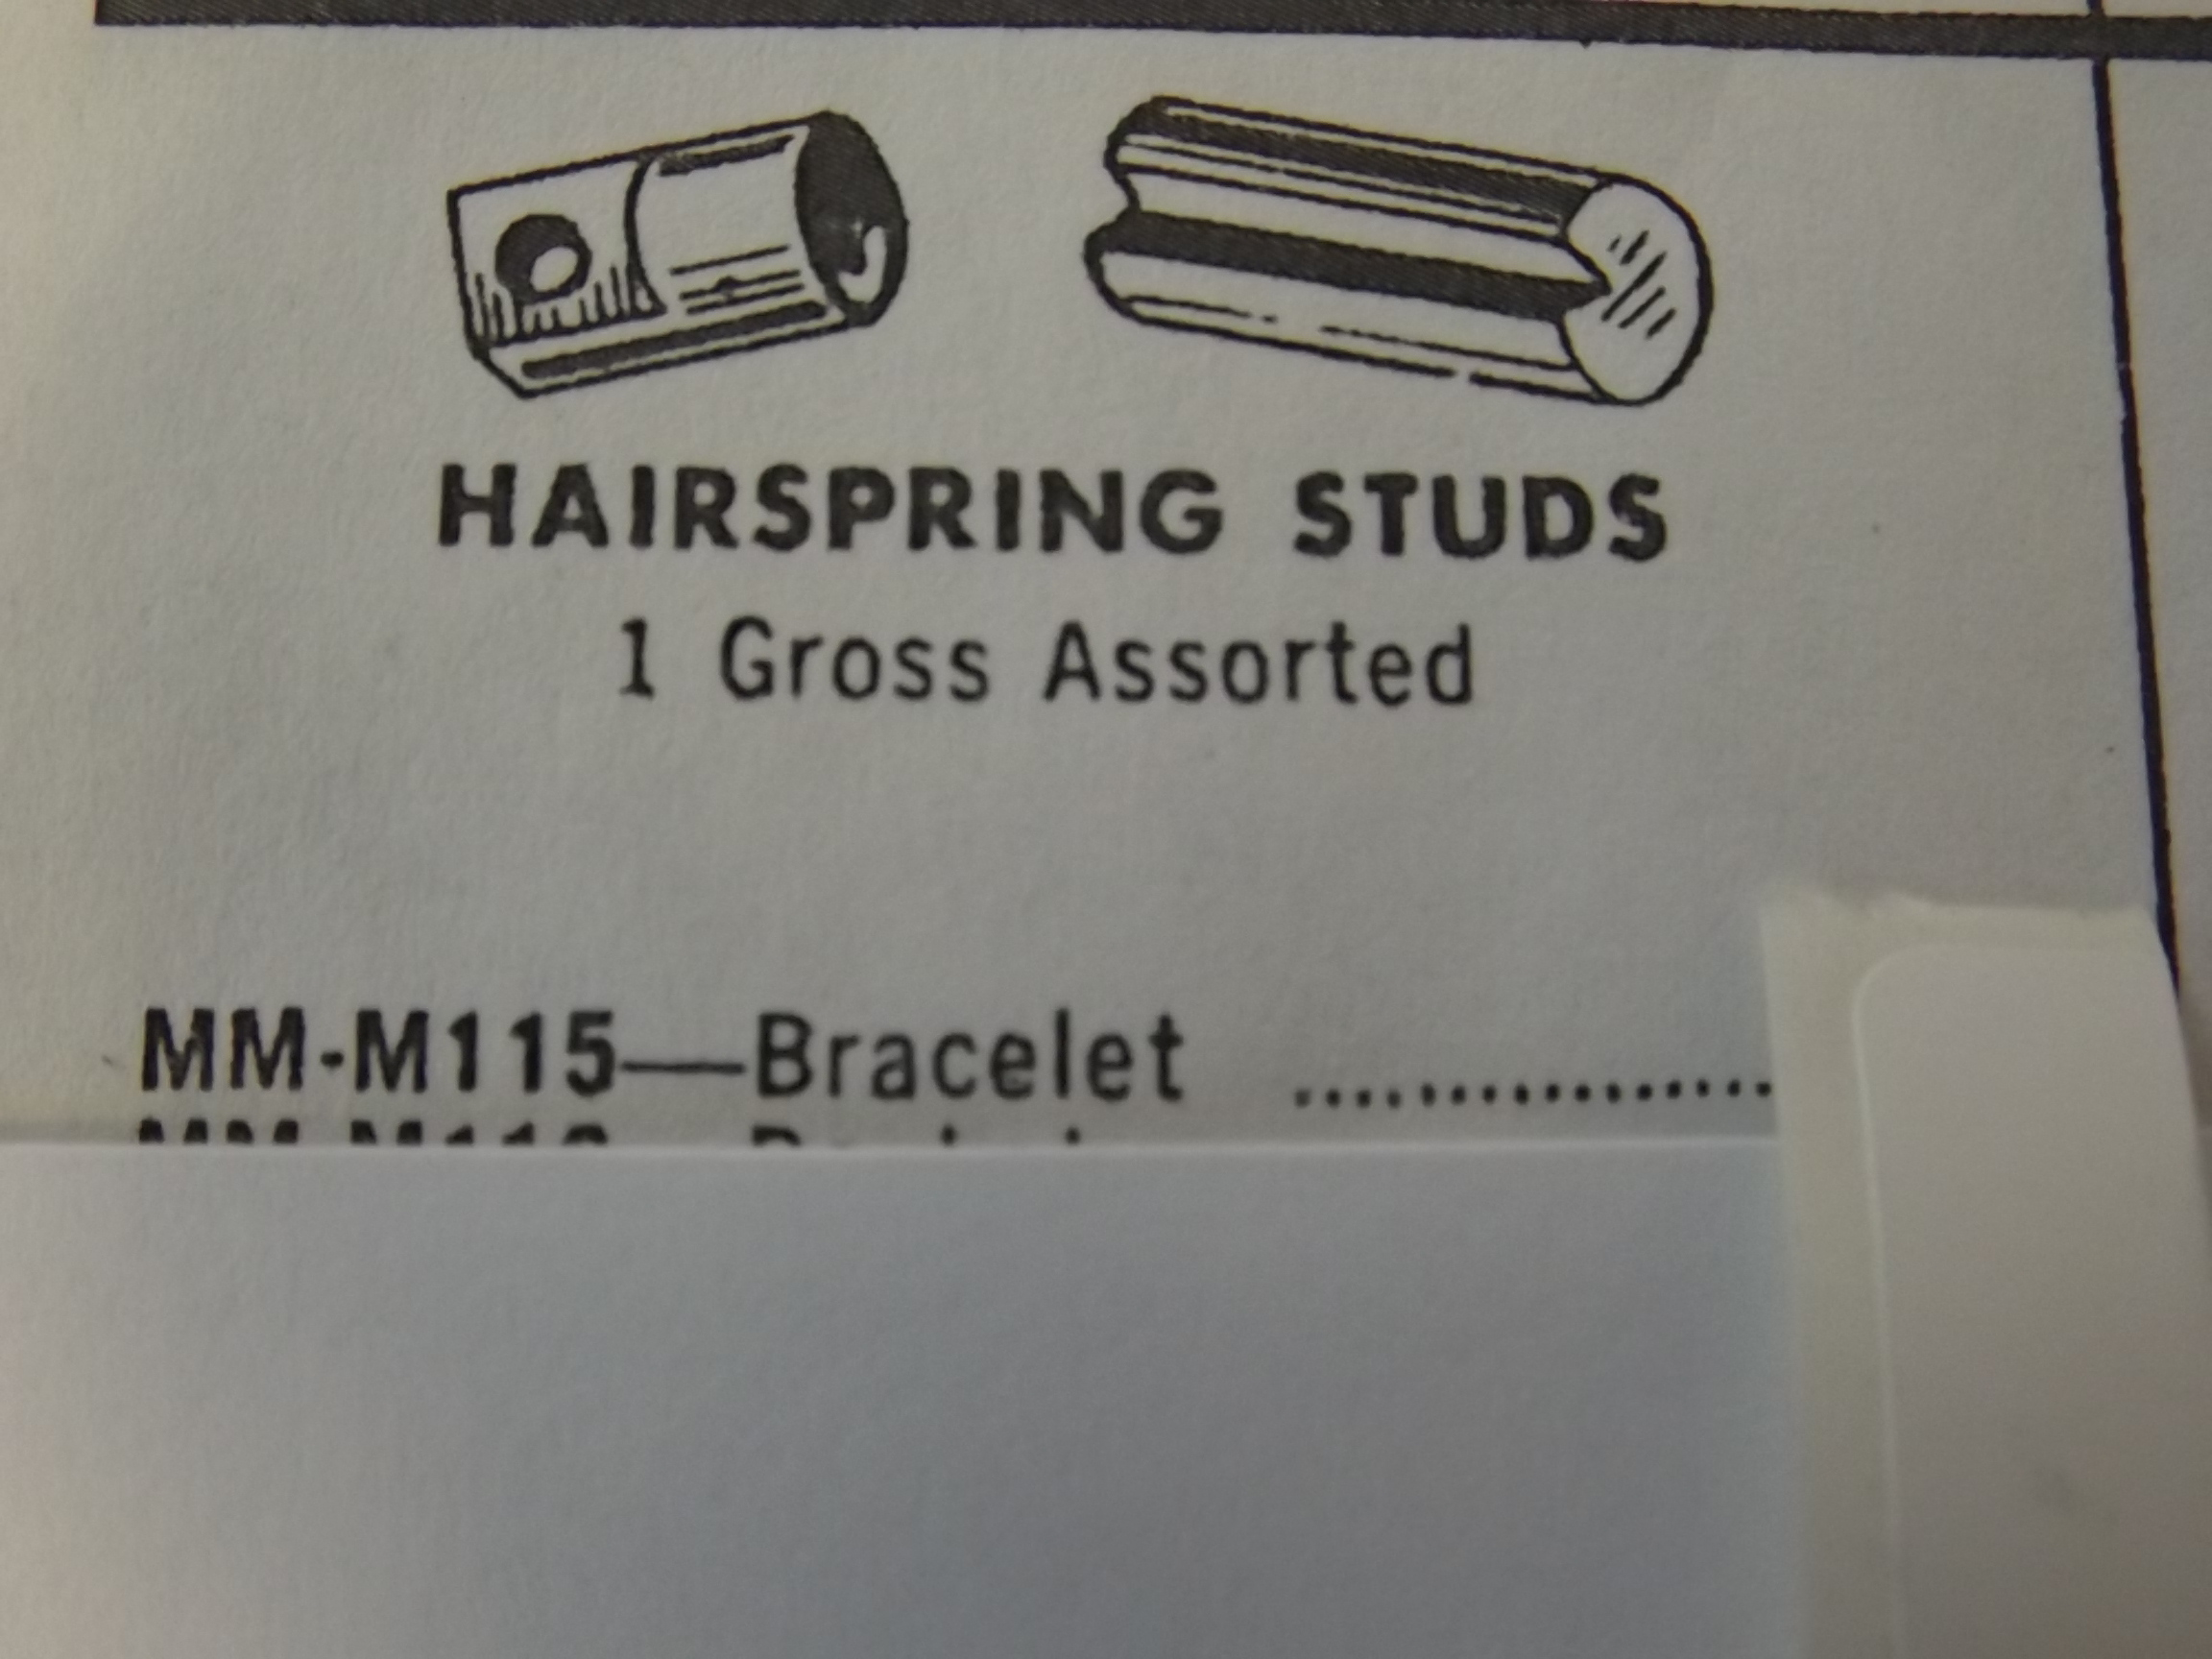 MM-M115 Hairspring Studs, Bracelet- 1 Gross- Bestfit- Five Only!